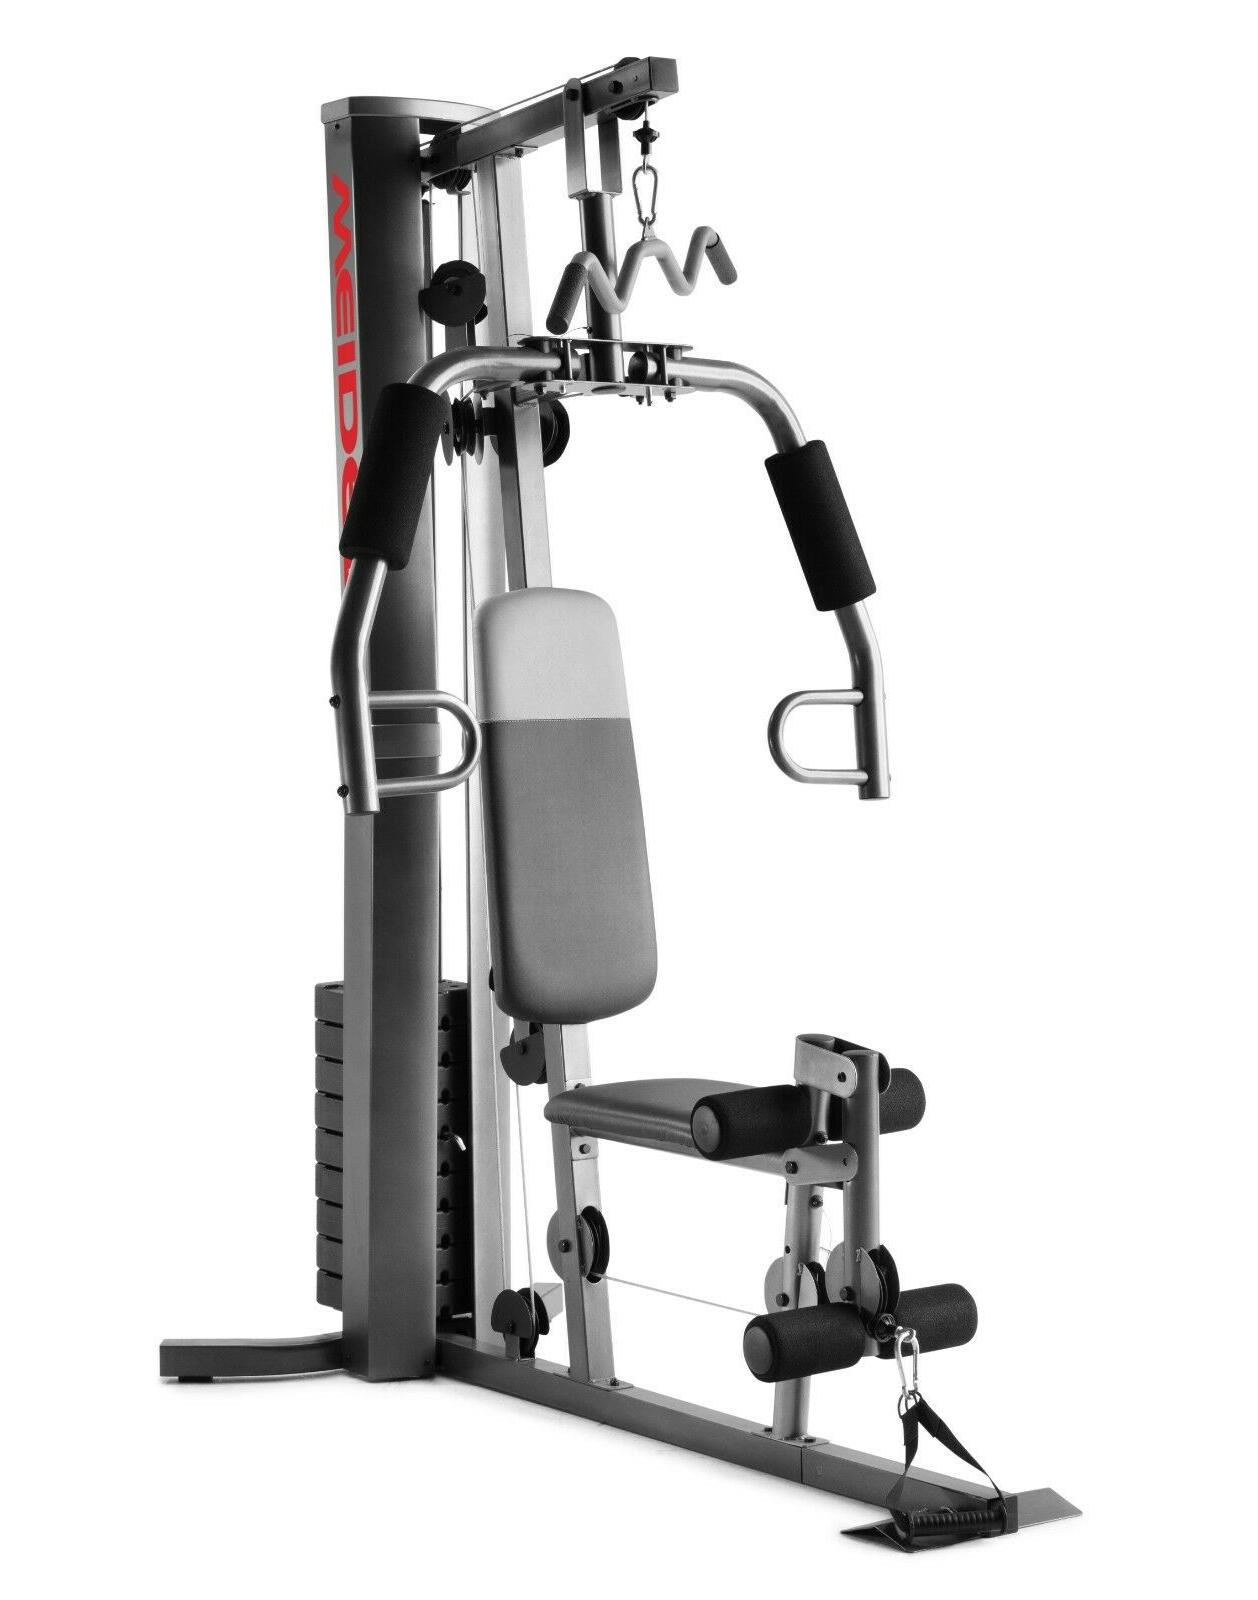 home gym equipment weight training exercise fitness